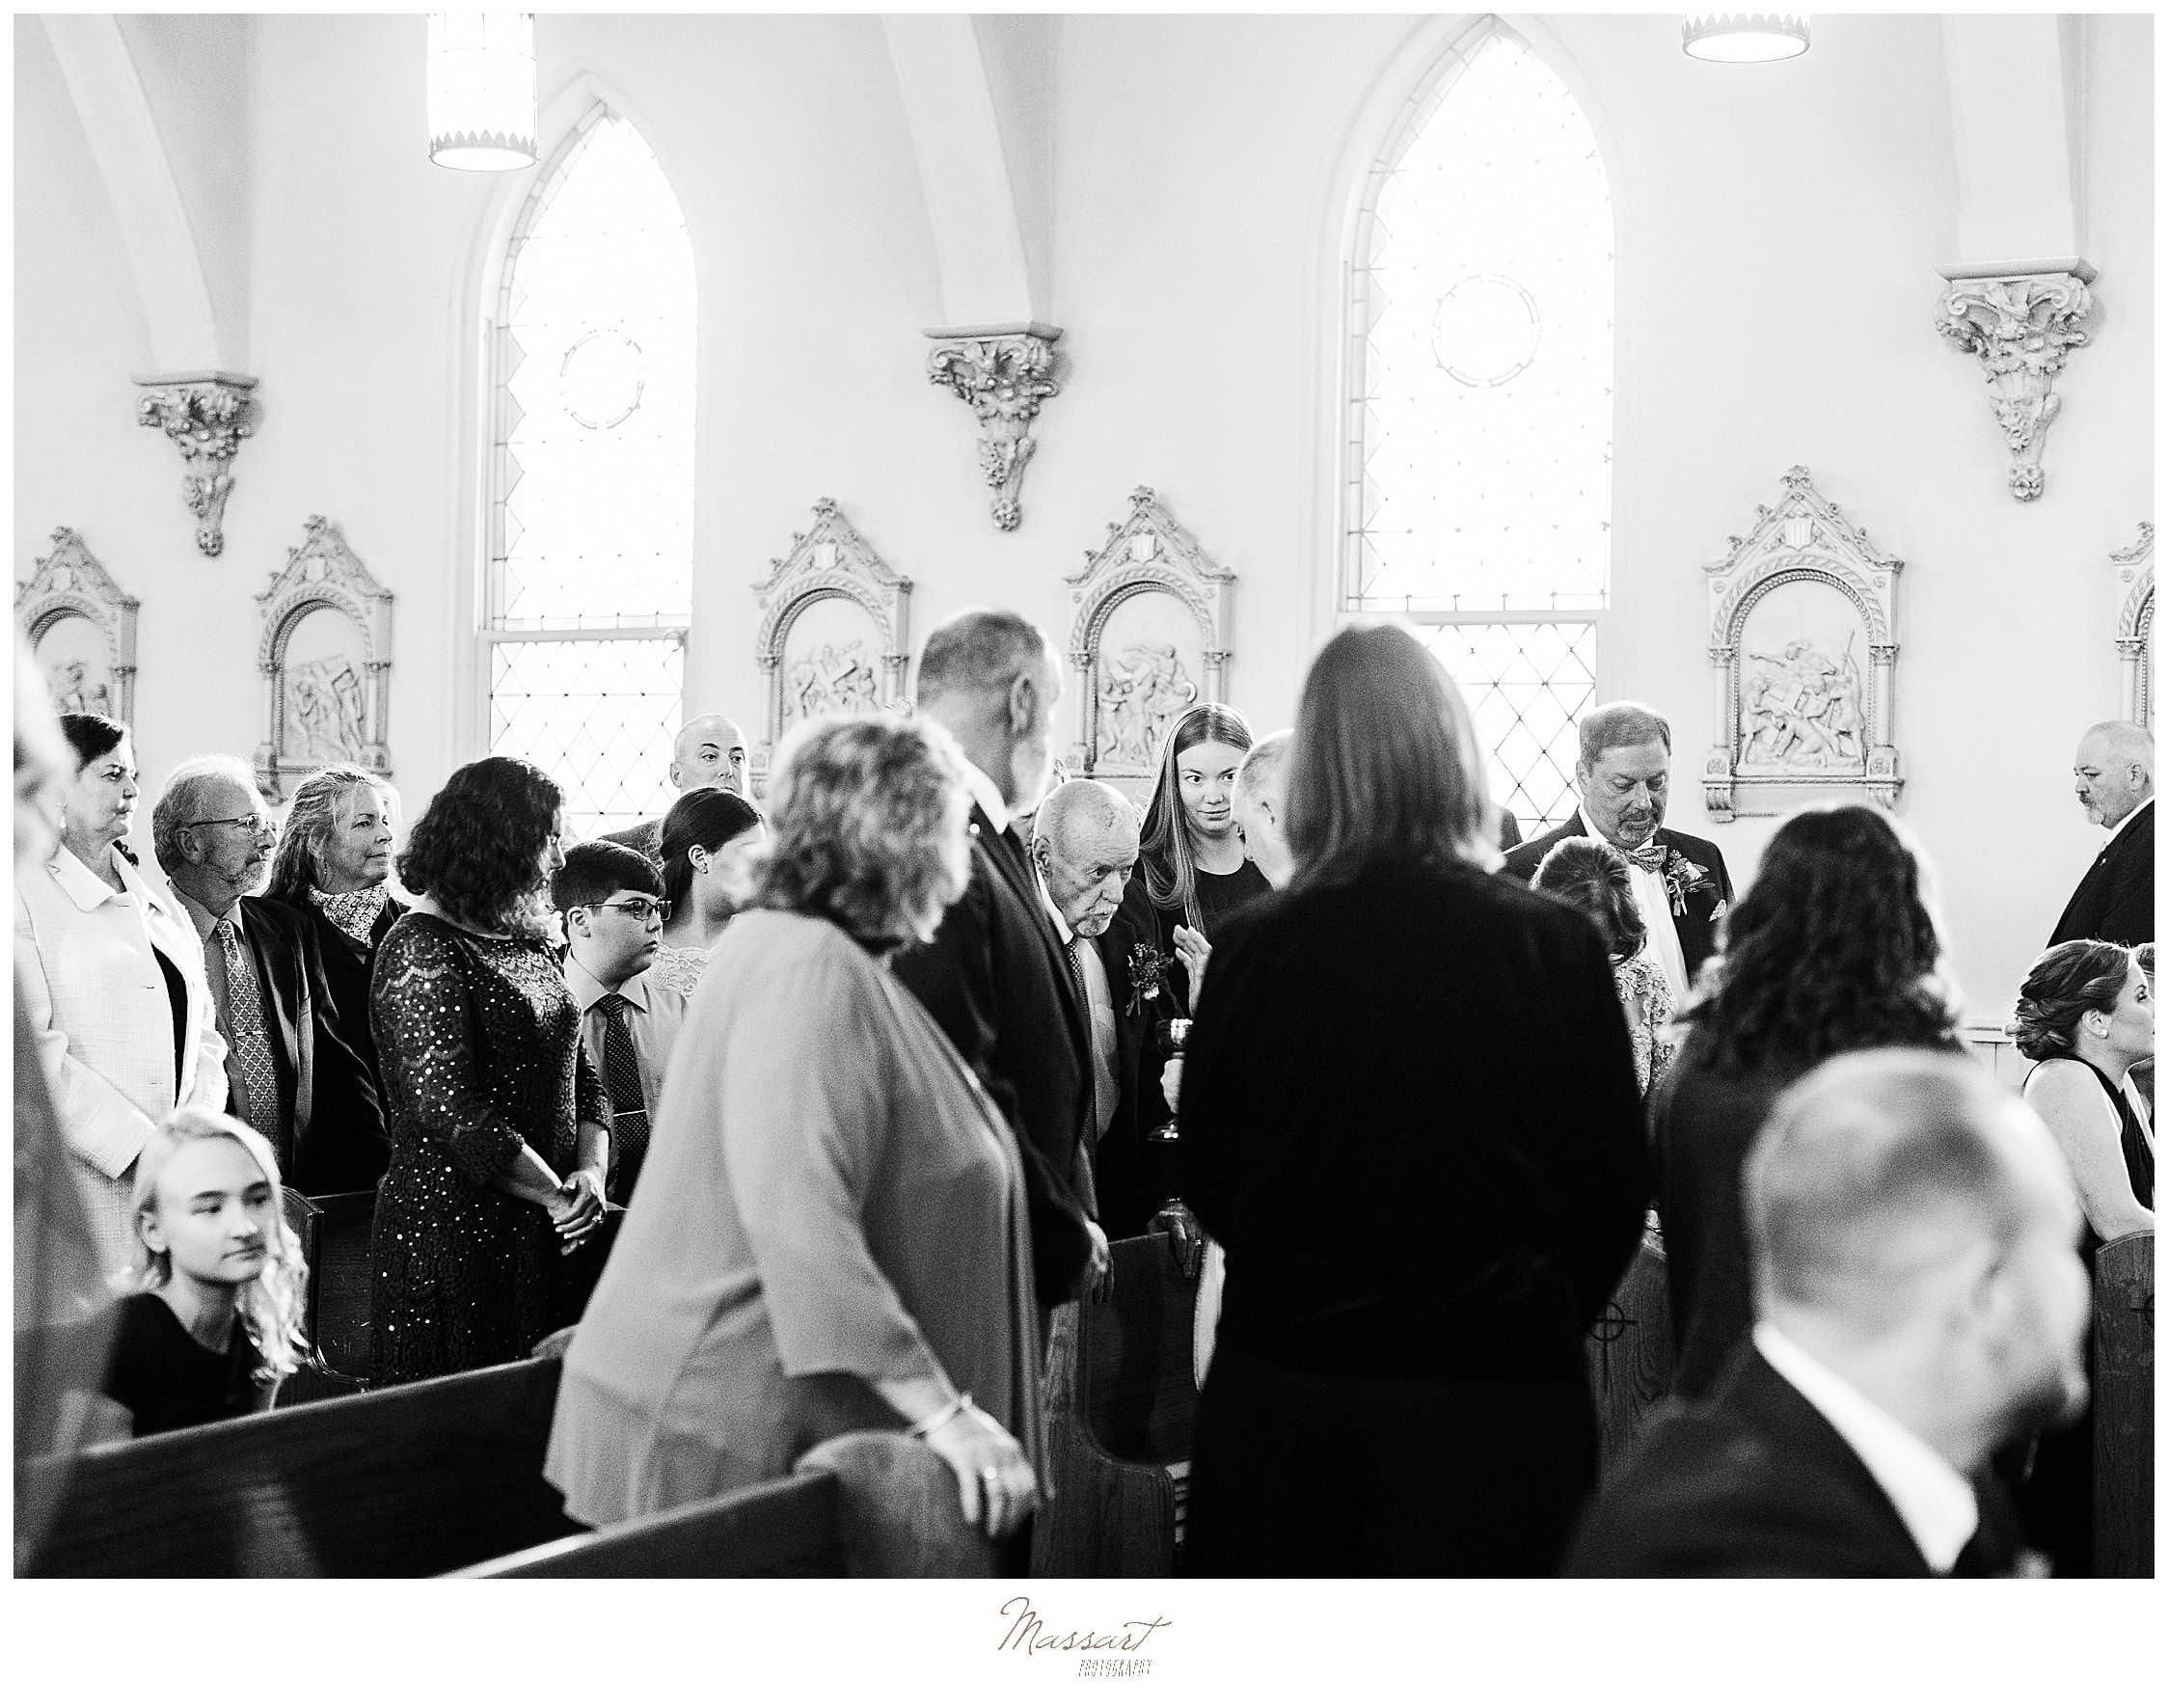 wedding ceremony in church photographed by Massart Photography